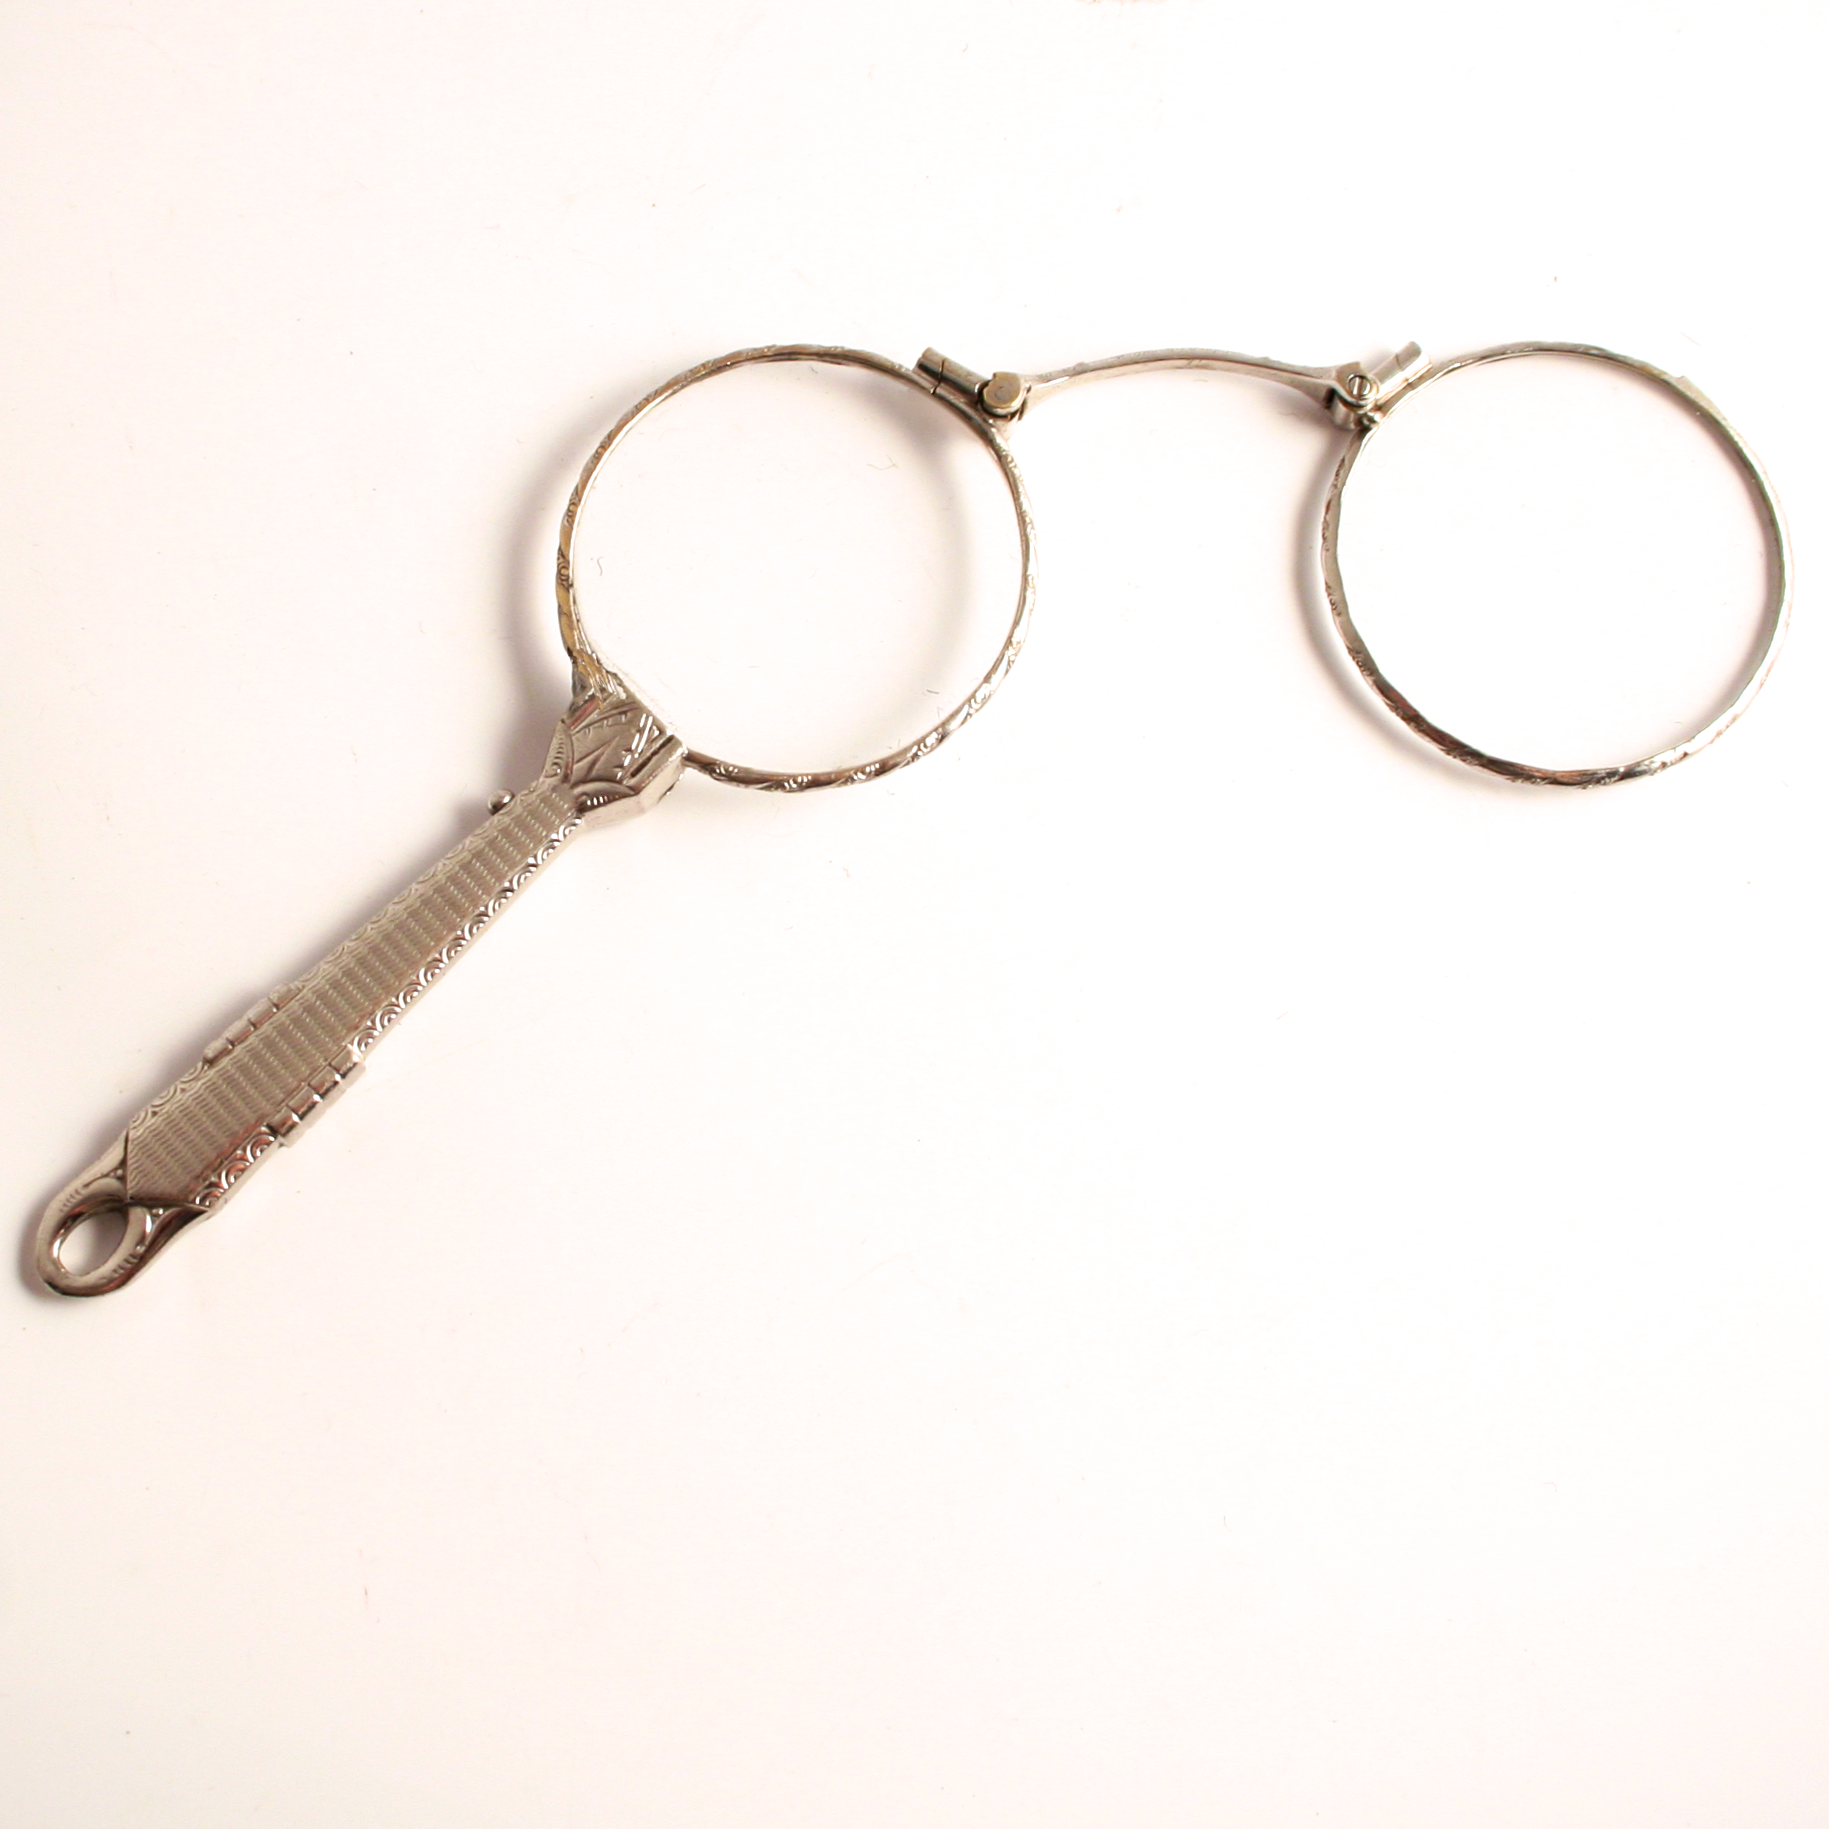 Vintage Art Deco Chrome Lorgnette Pendant 1930 Eye Glasses with Decorative Handle